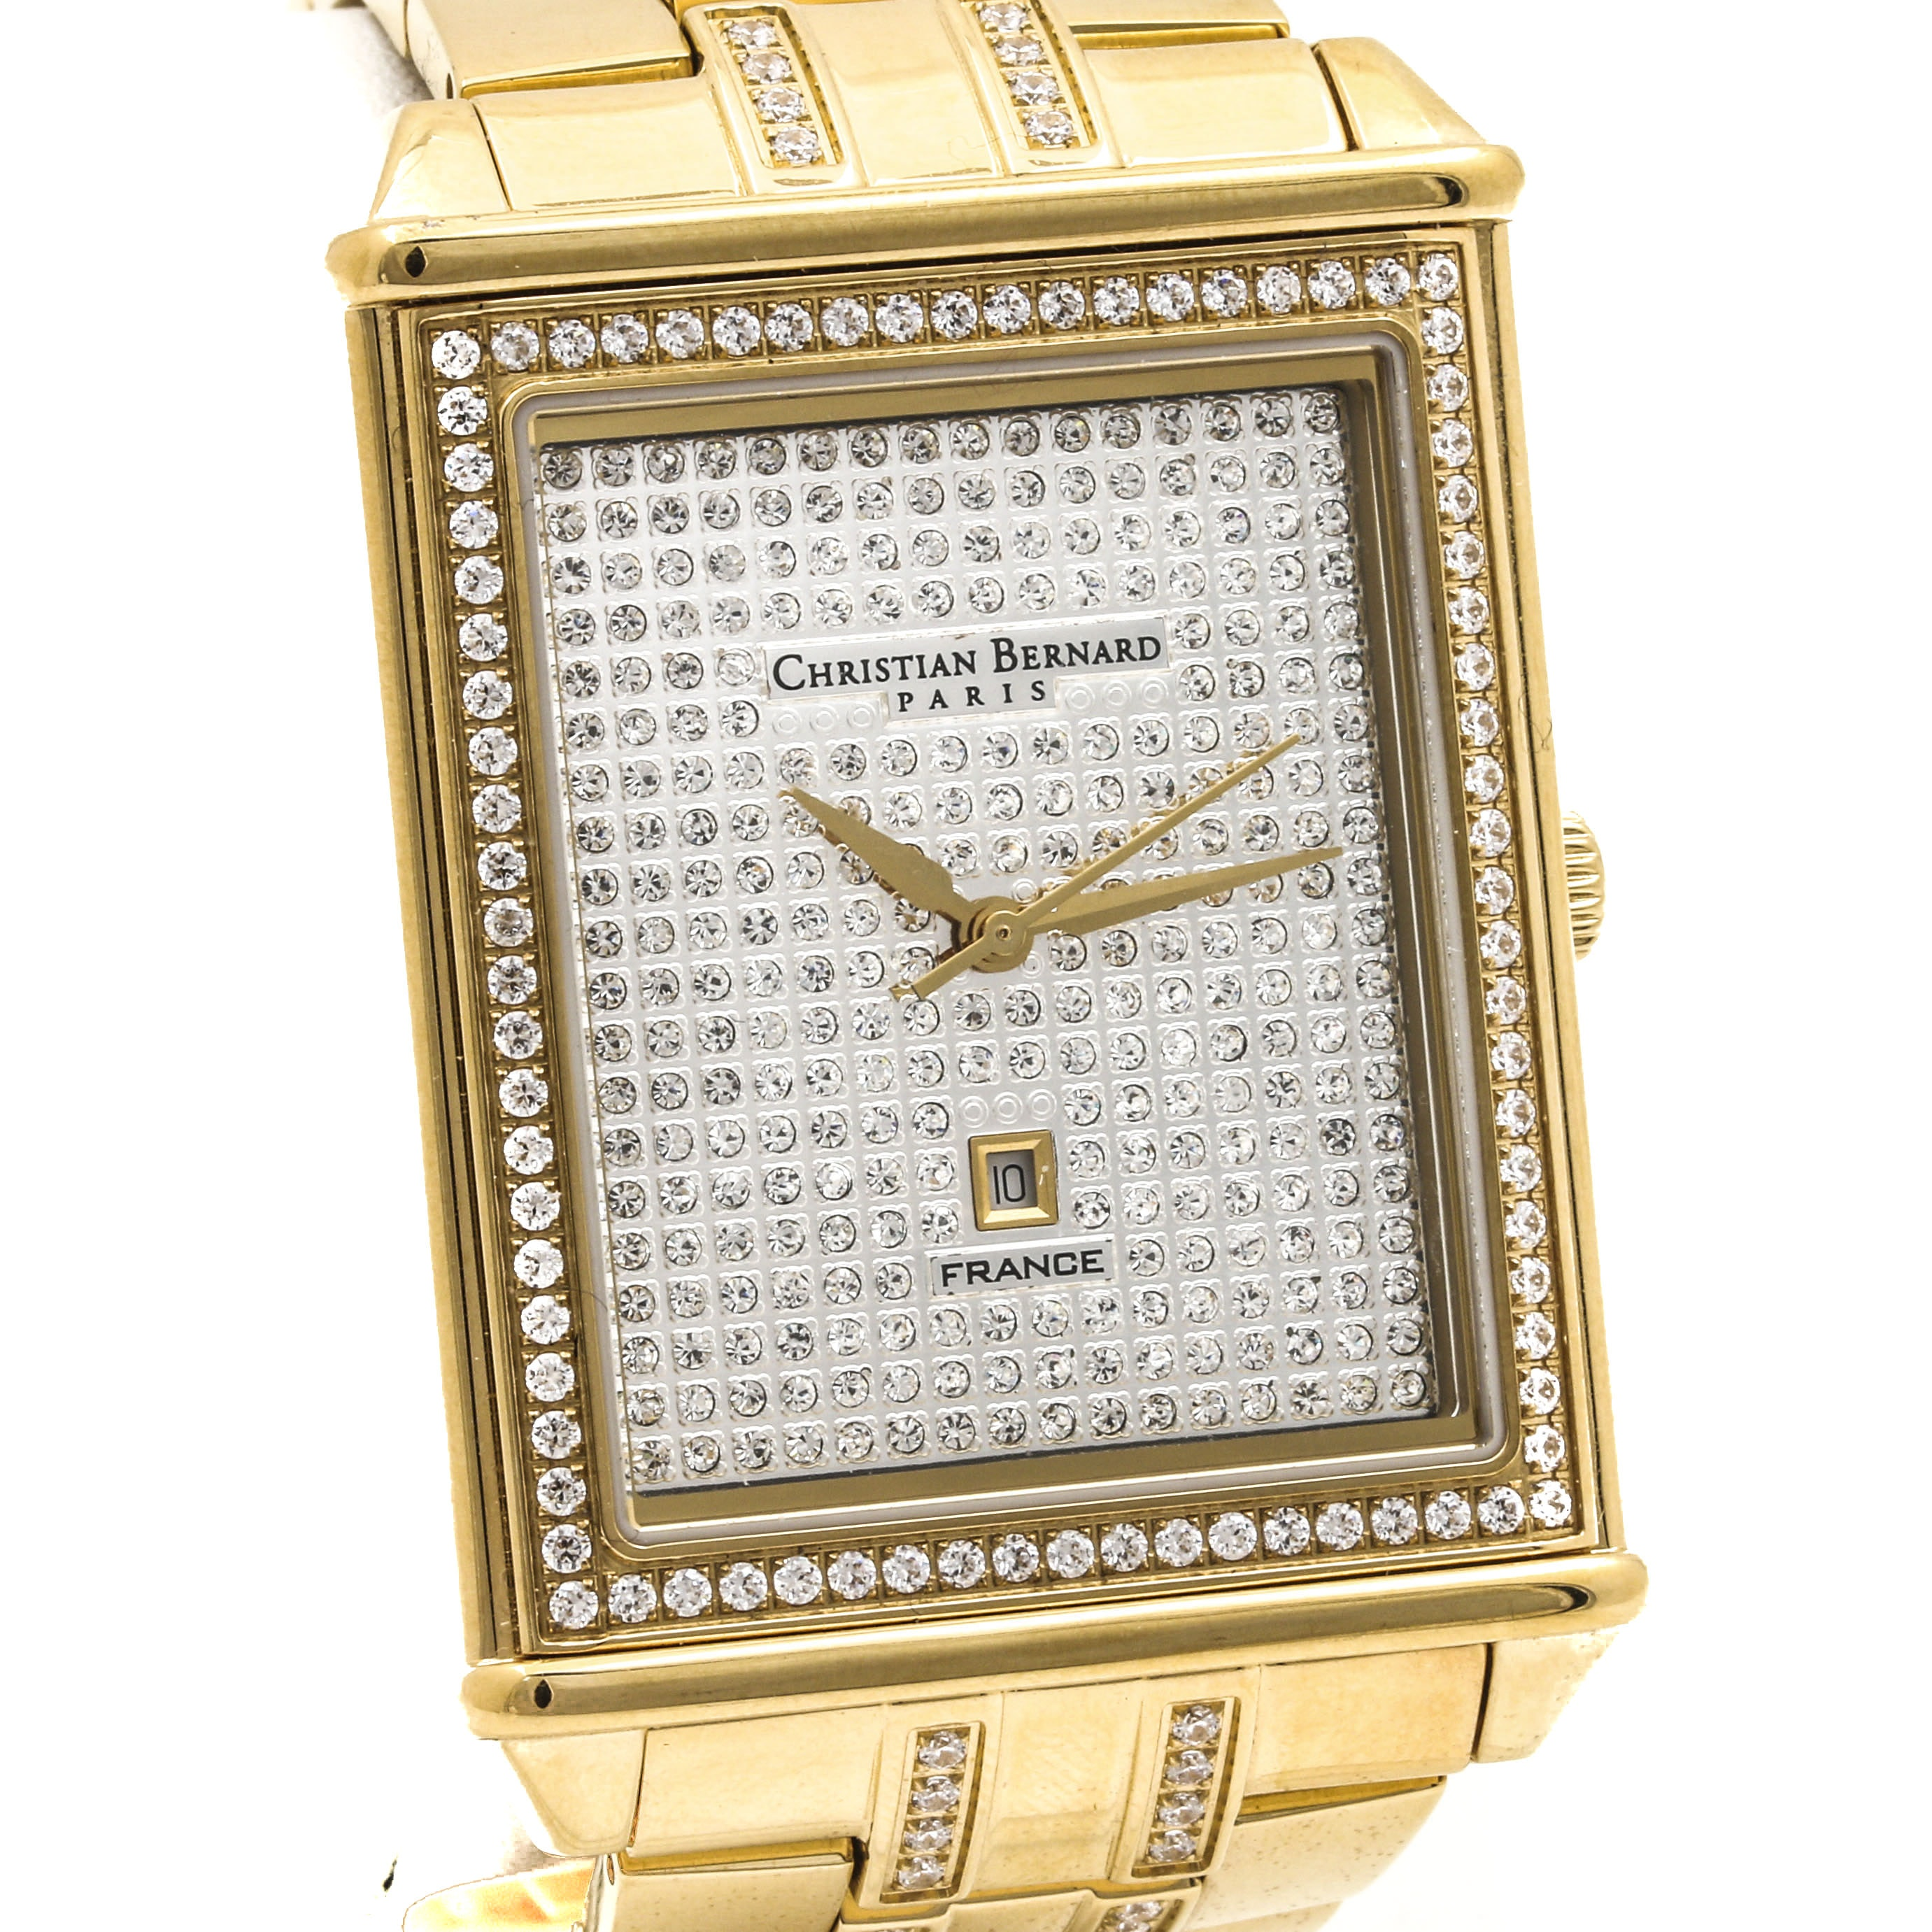 Christian Bernard Stainless Steel Gold Tone Wristwatch